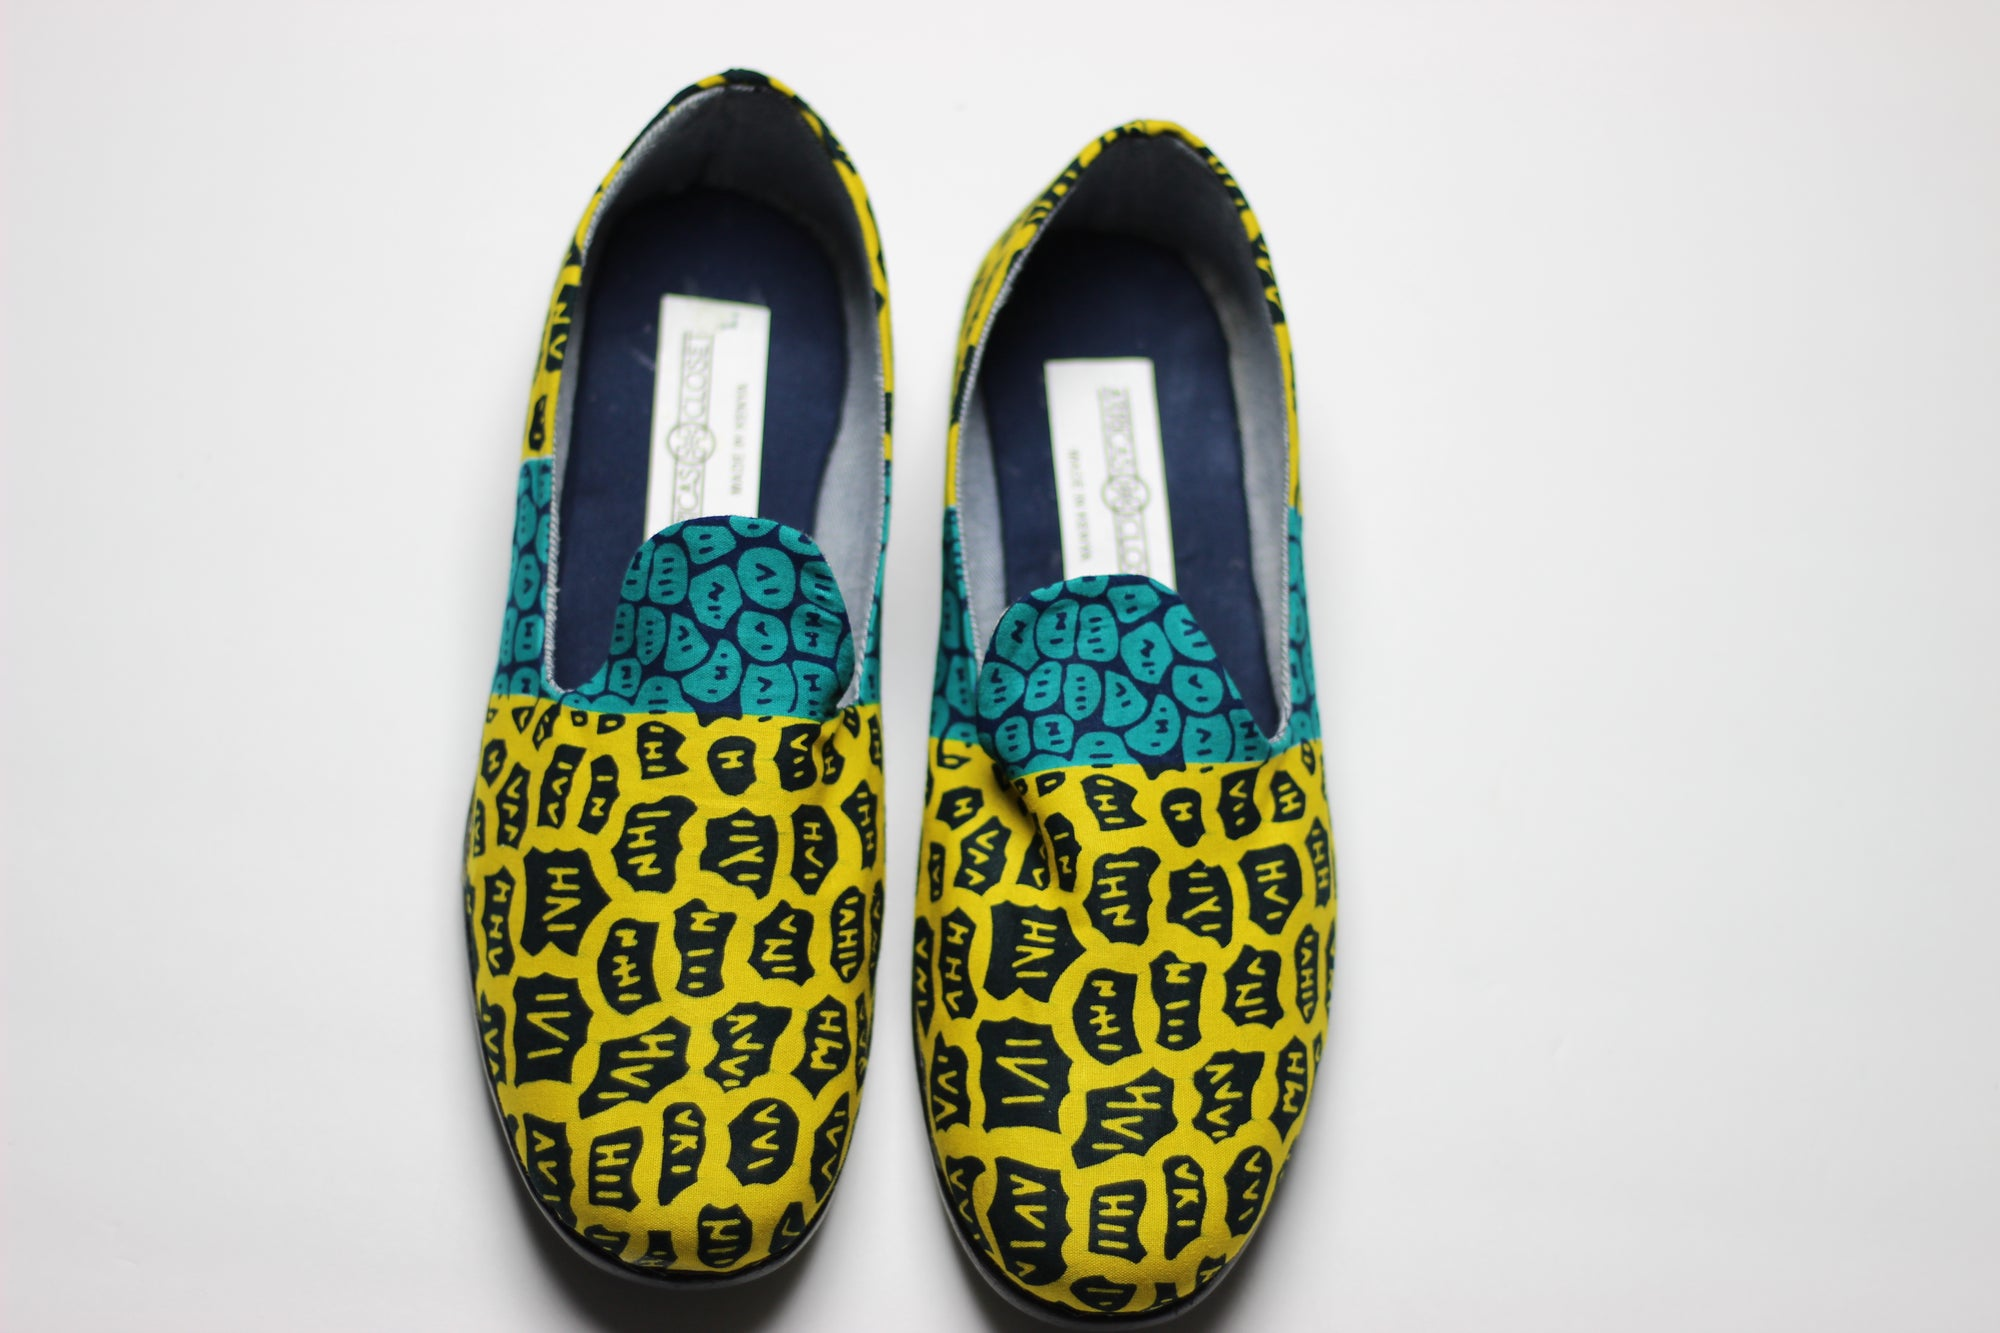 African Print /Ankara Flat Shoes /Loafers(slip ons) - Yellow and Green Animal Print.